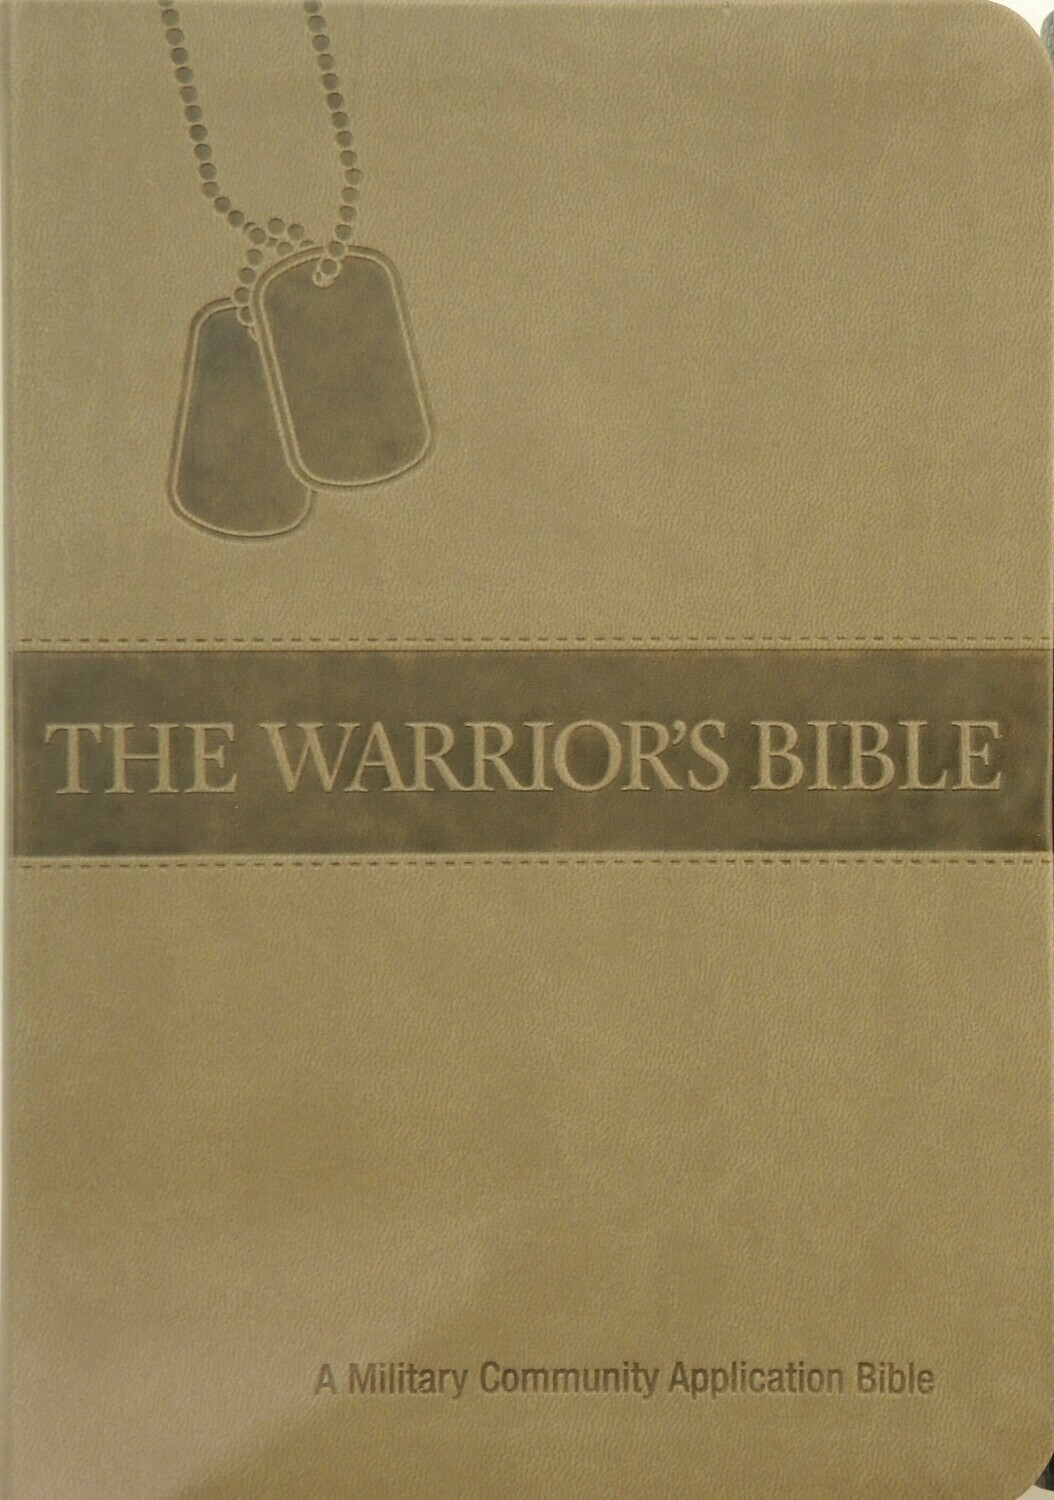 Warriors Bible (NKJV) Brown PU (polyurethane) Cover